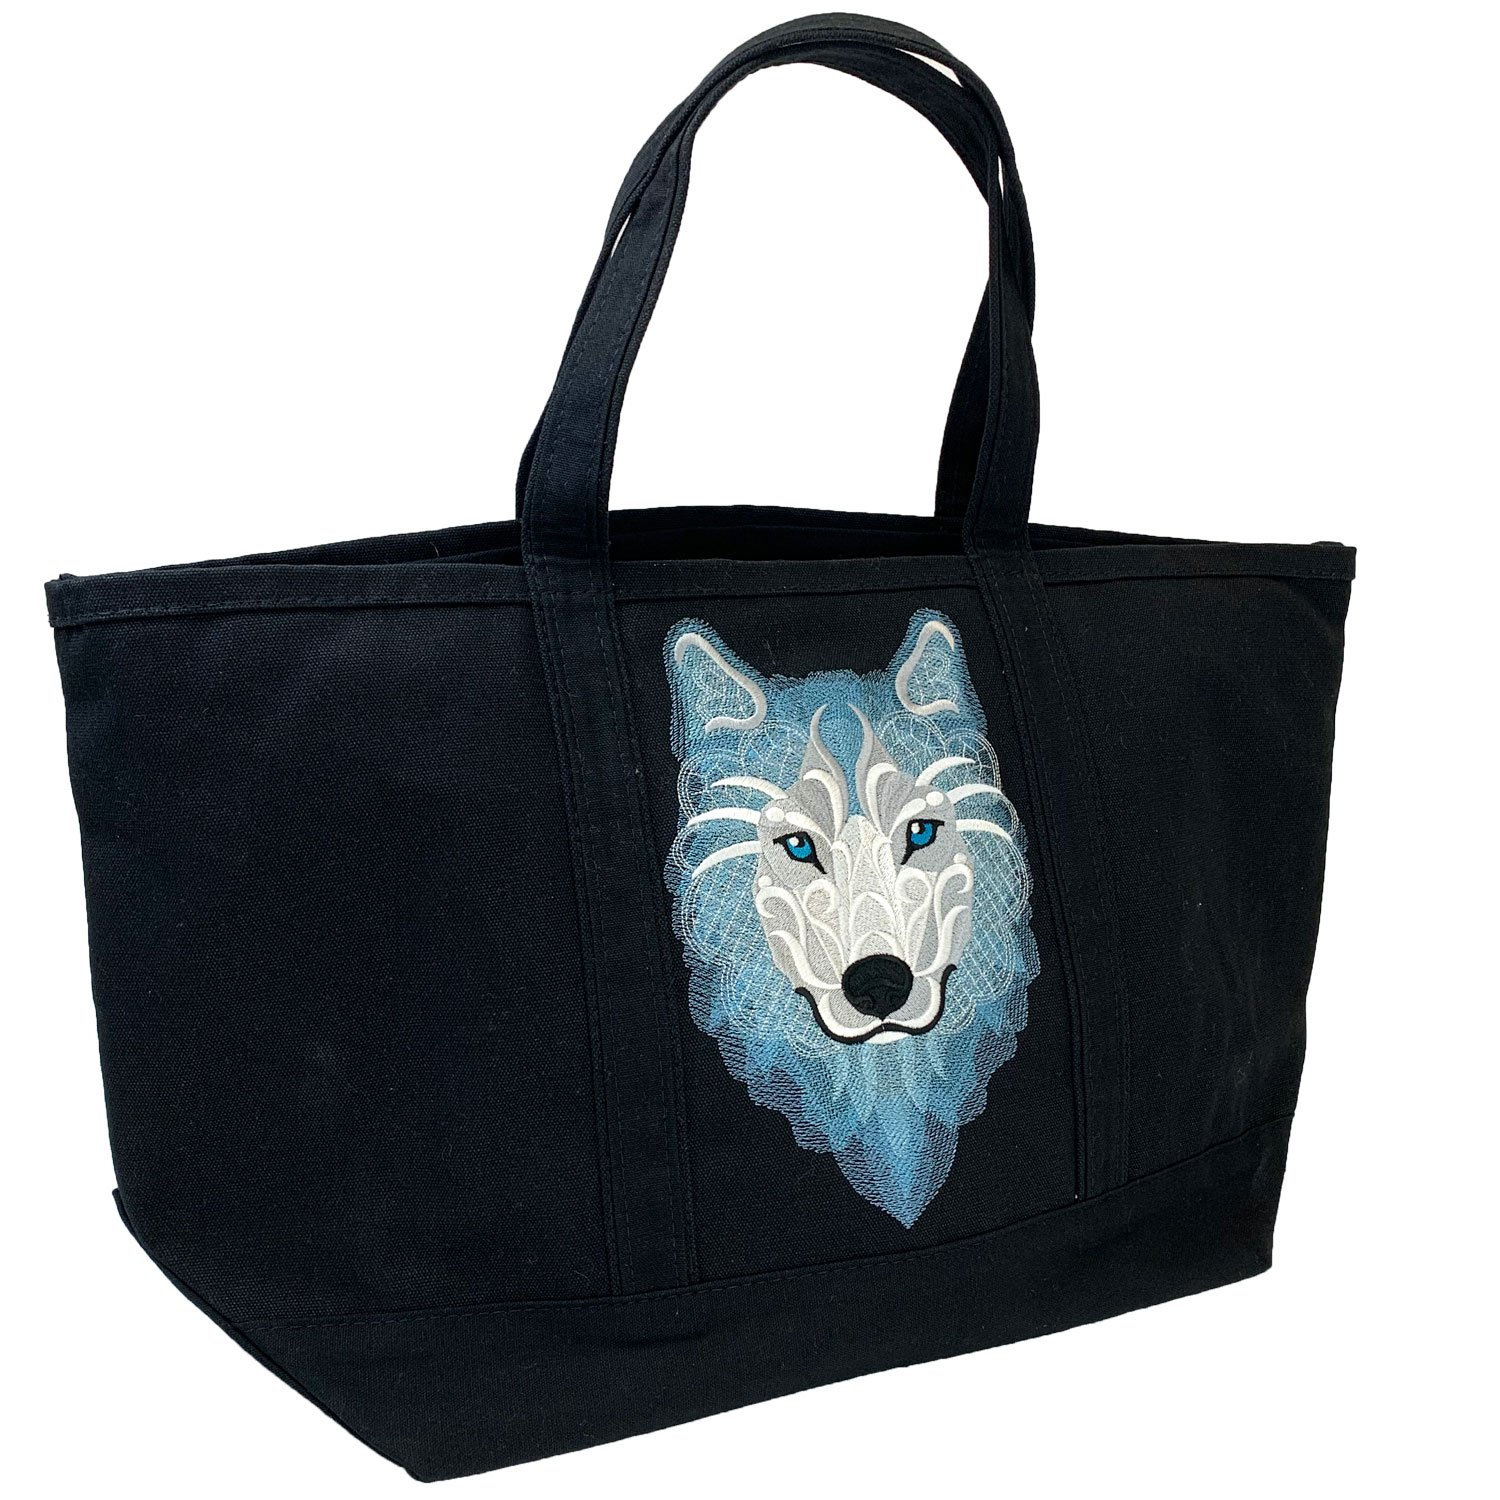 Embroidered Canvas Tote Large Black Frosty Wolf